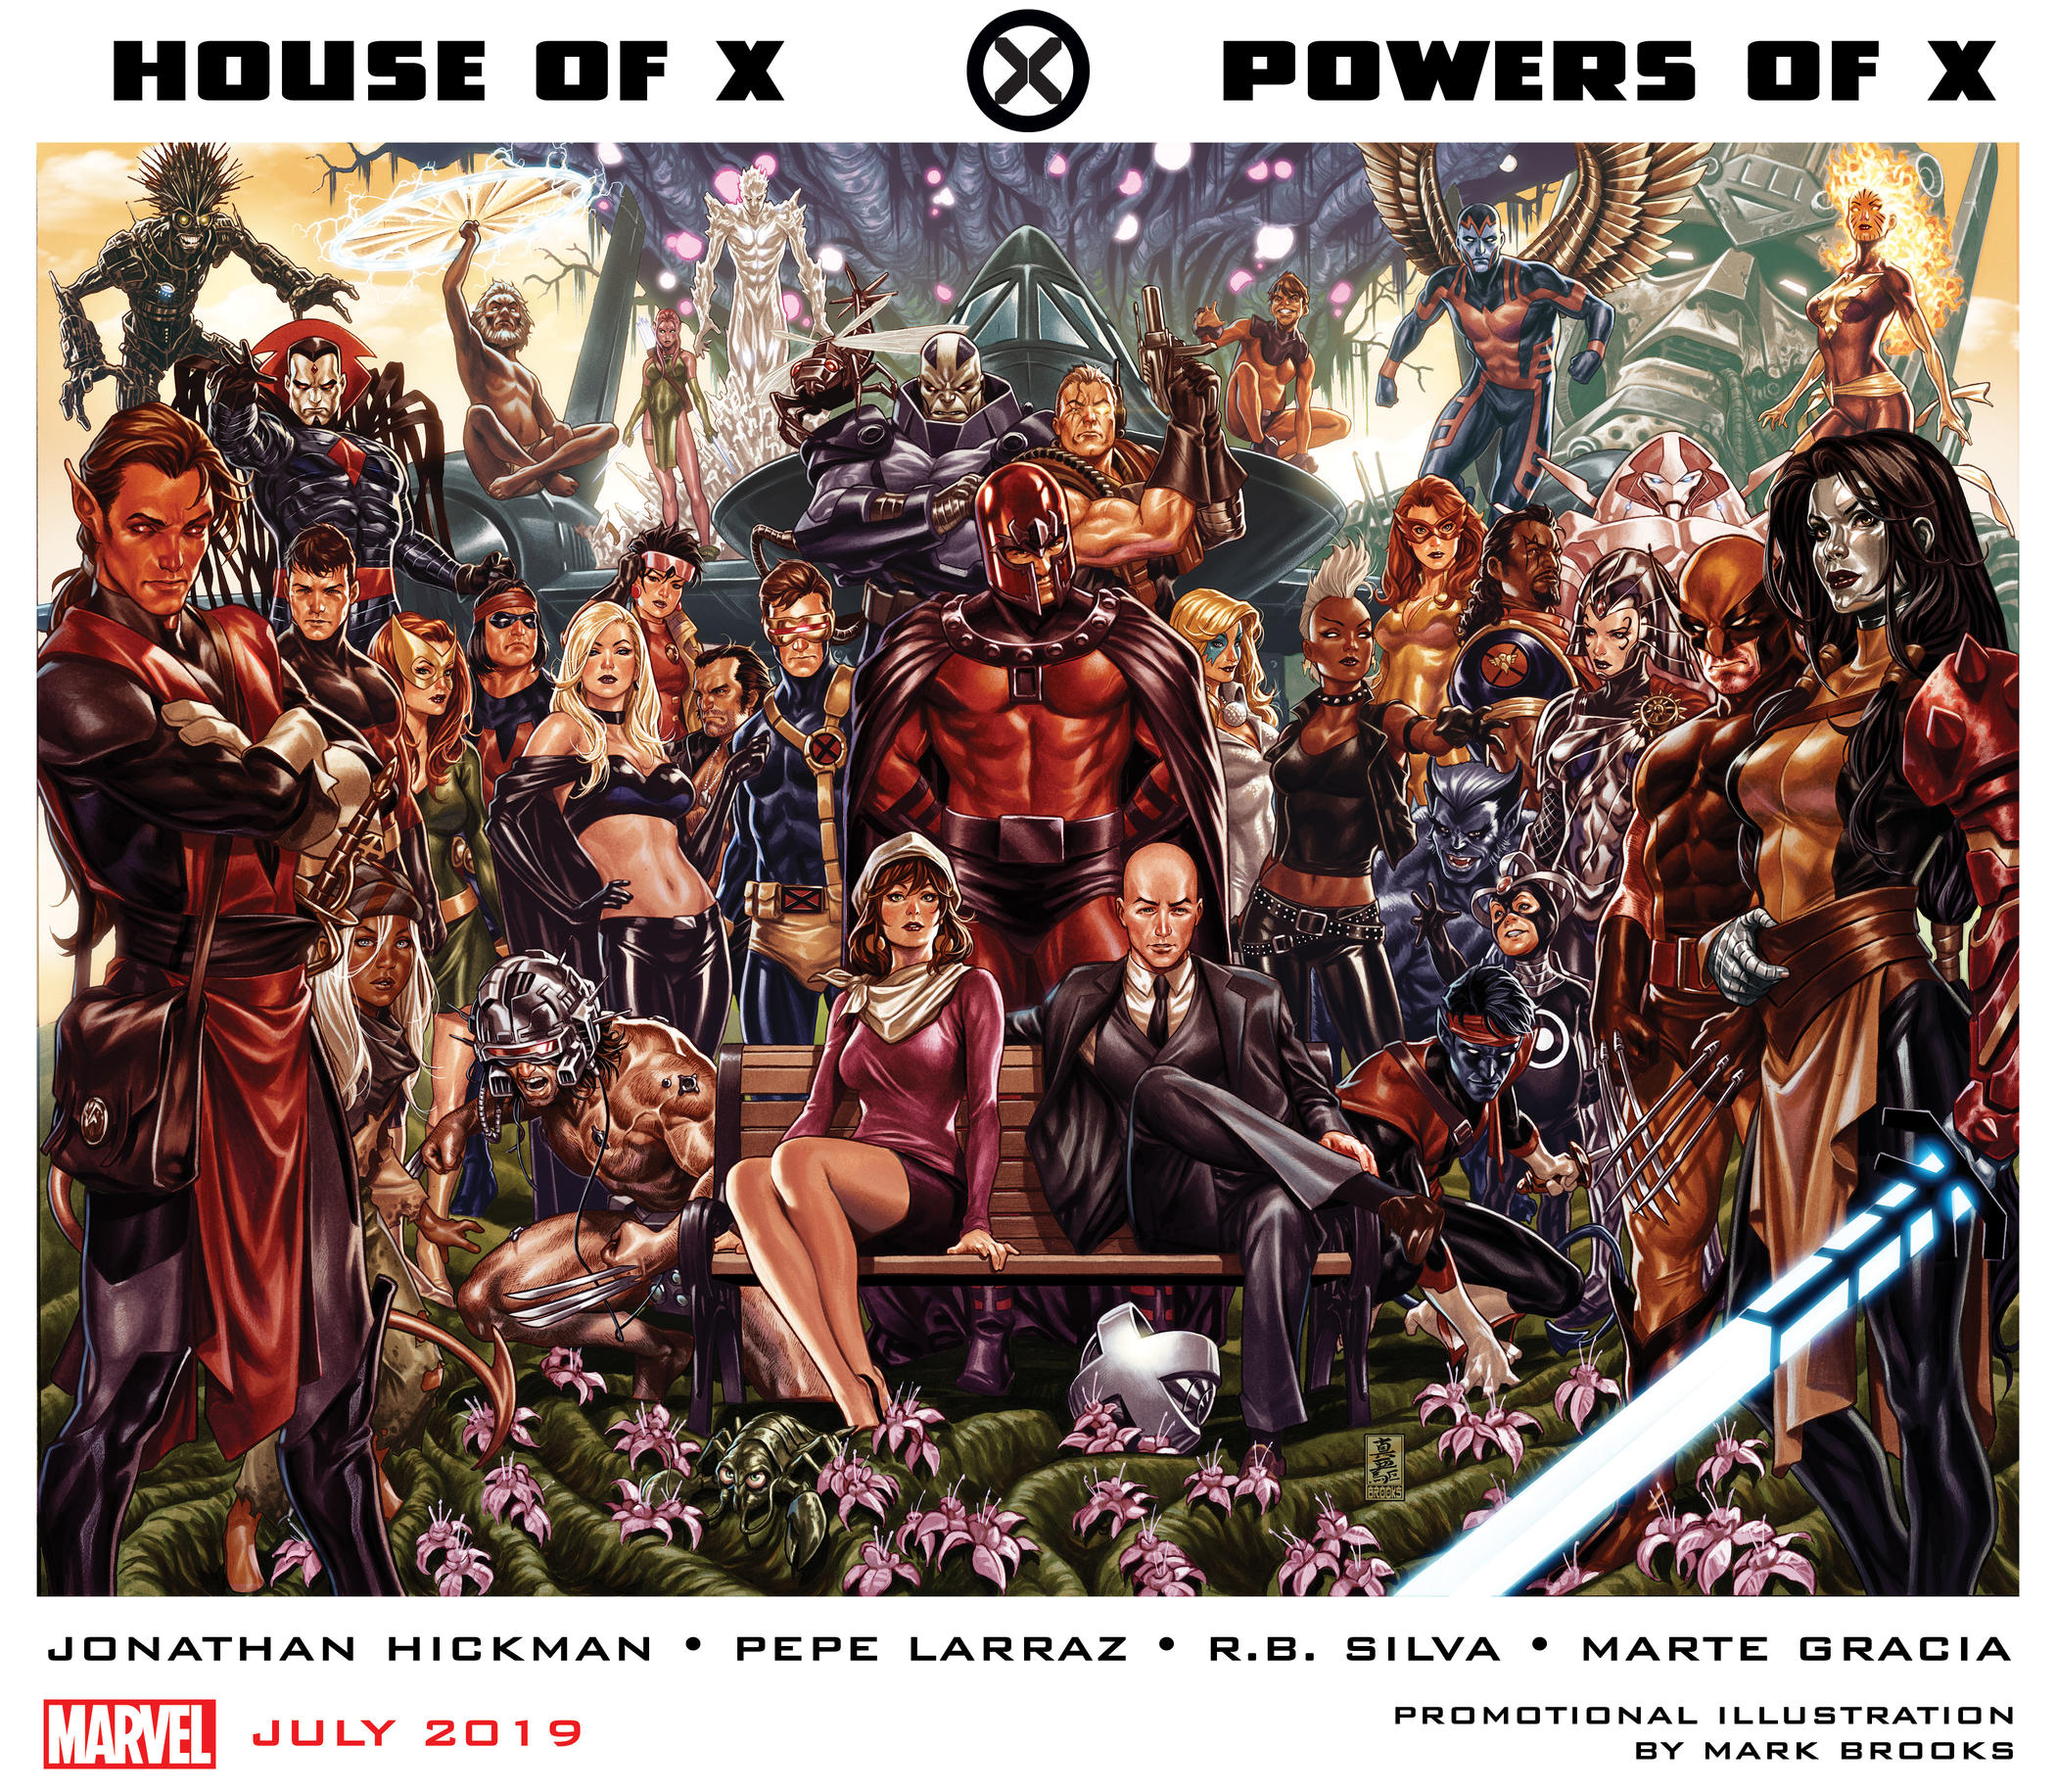 HOUSE OF X and POWERS OF X